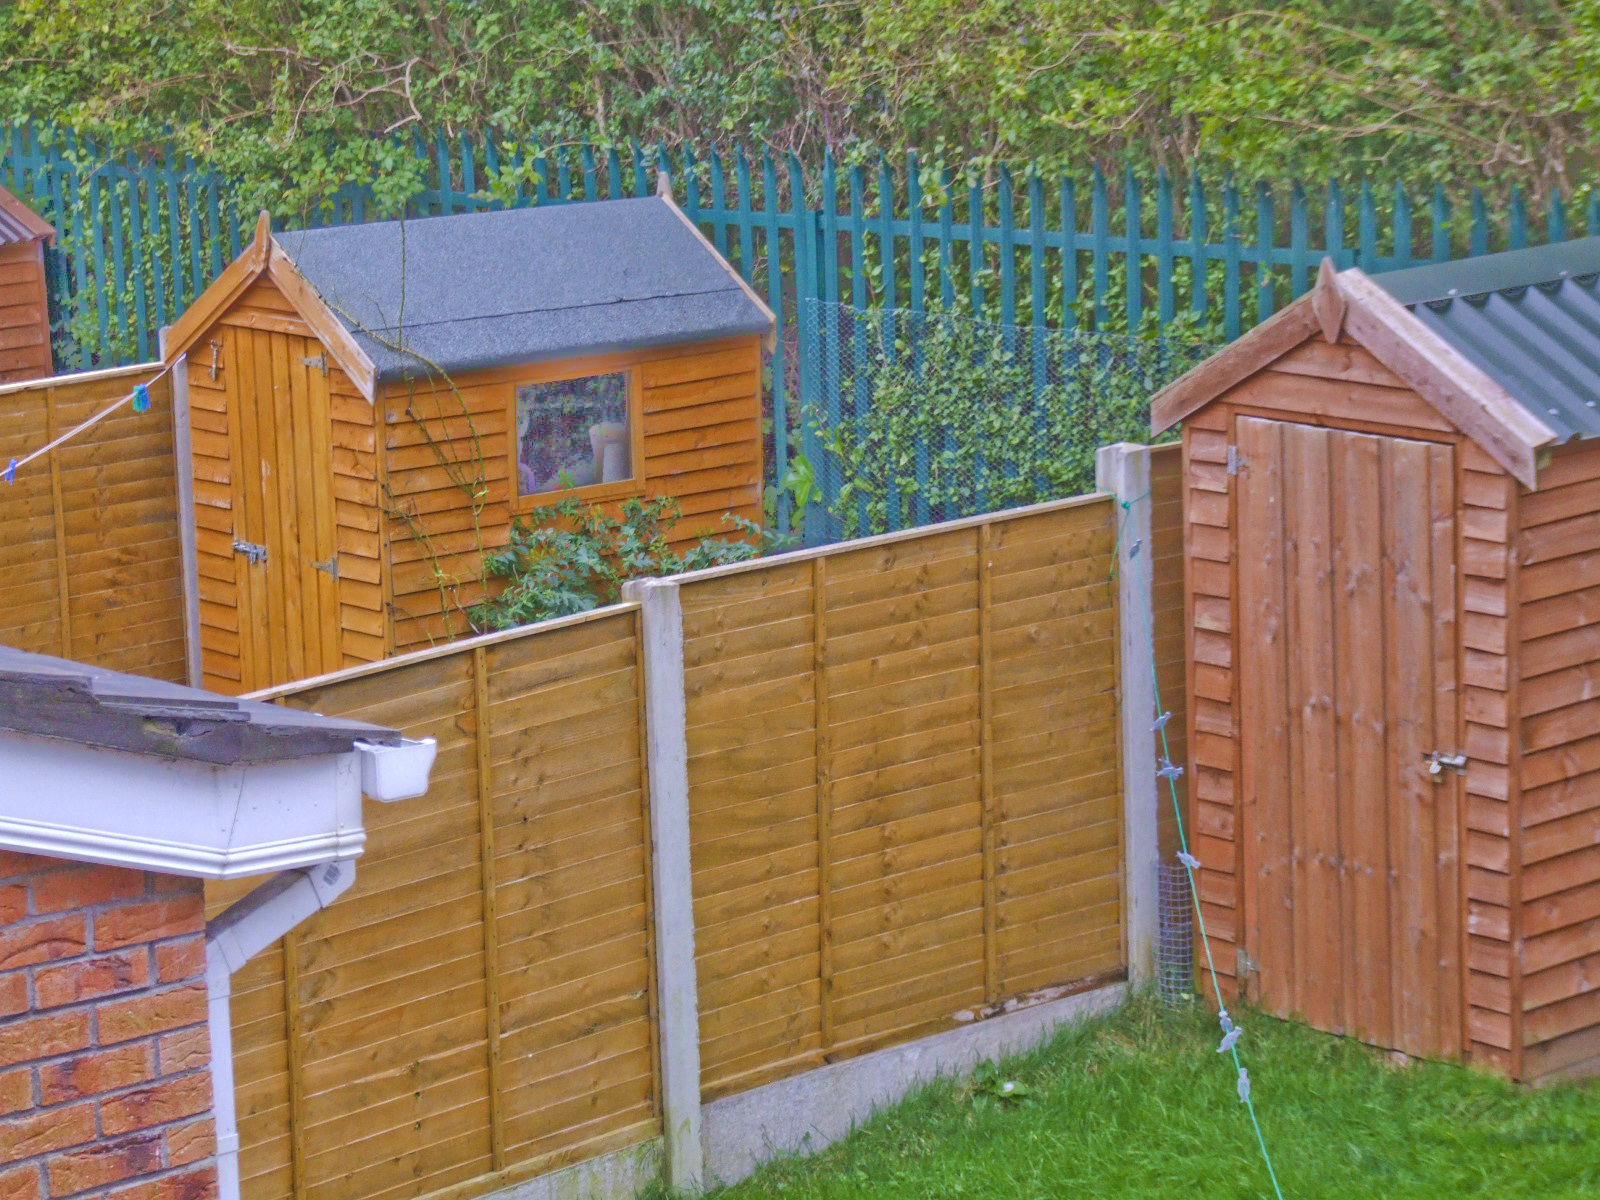 Shed wiki everipedia for Garden tool shed plans